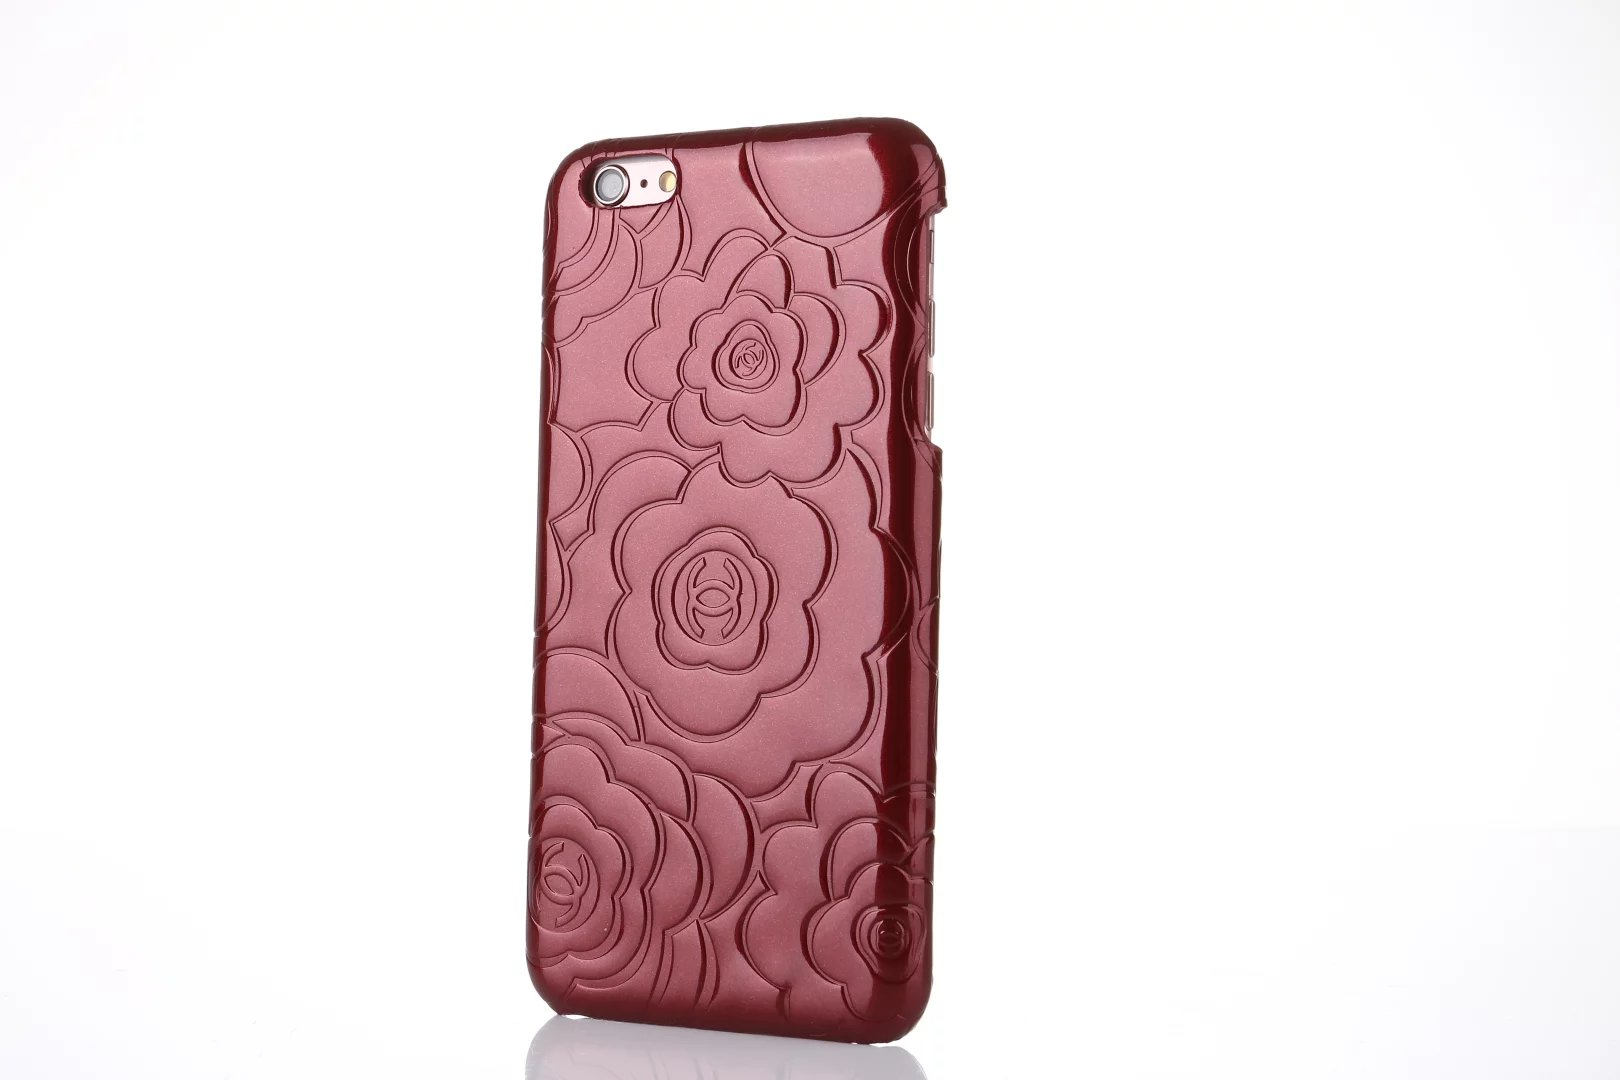 awesome iphone 7 cases iphone 7 case for 7 fashion iphone7 case iphone 7 cases leather phone case shop new apple phone best iphone cases best website for iphone cases phone cover custom